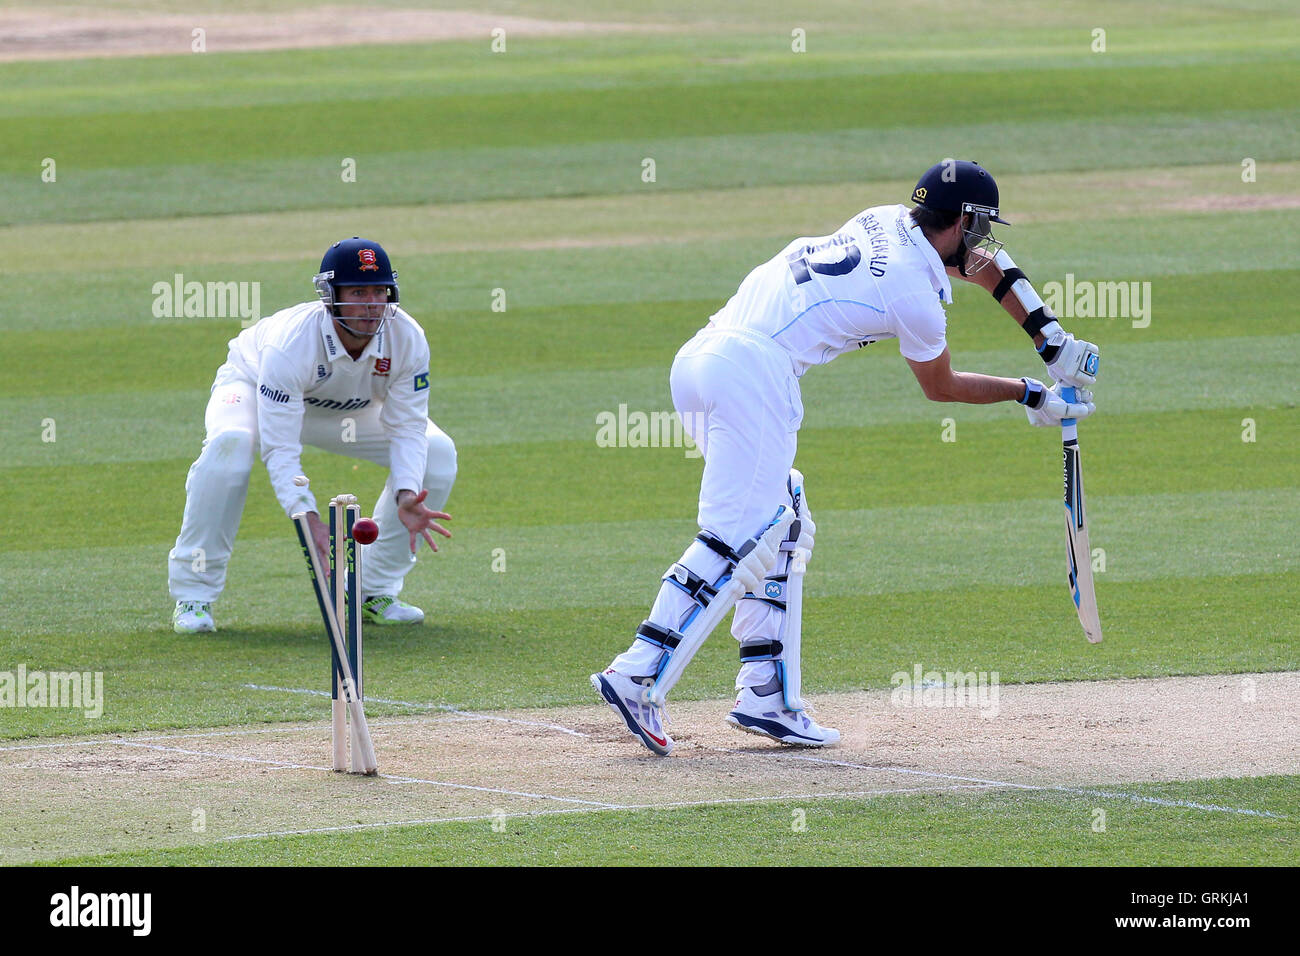 Tim Groenewald of Derbyshire is bowled out by David Masters - Essex CCC vs Derbyshire CCC - LV County Championship - Stock Image